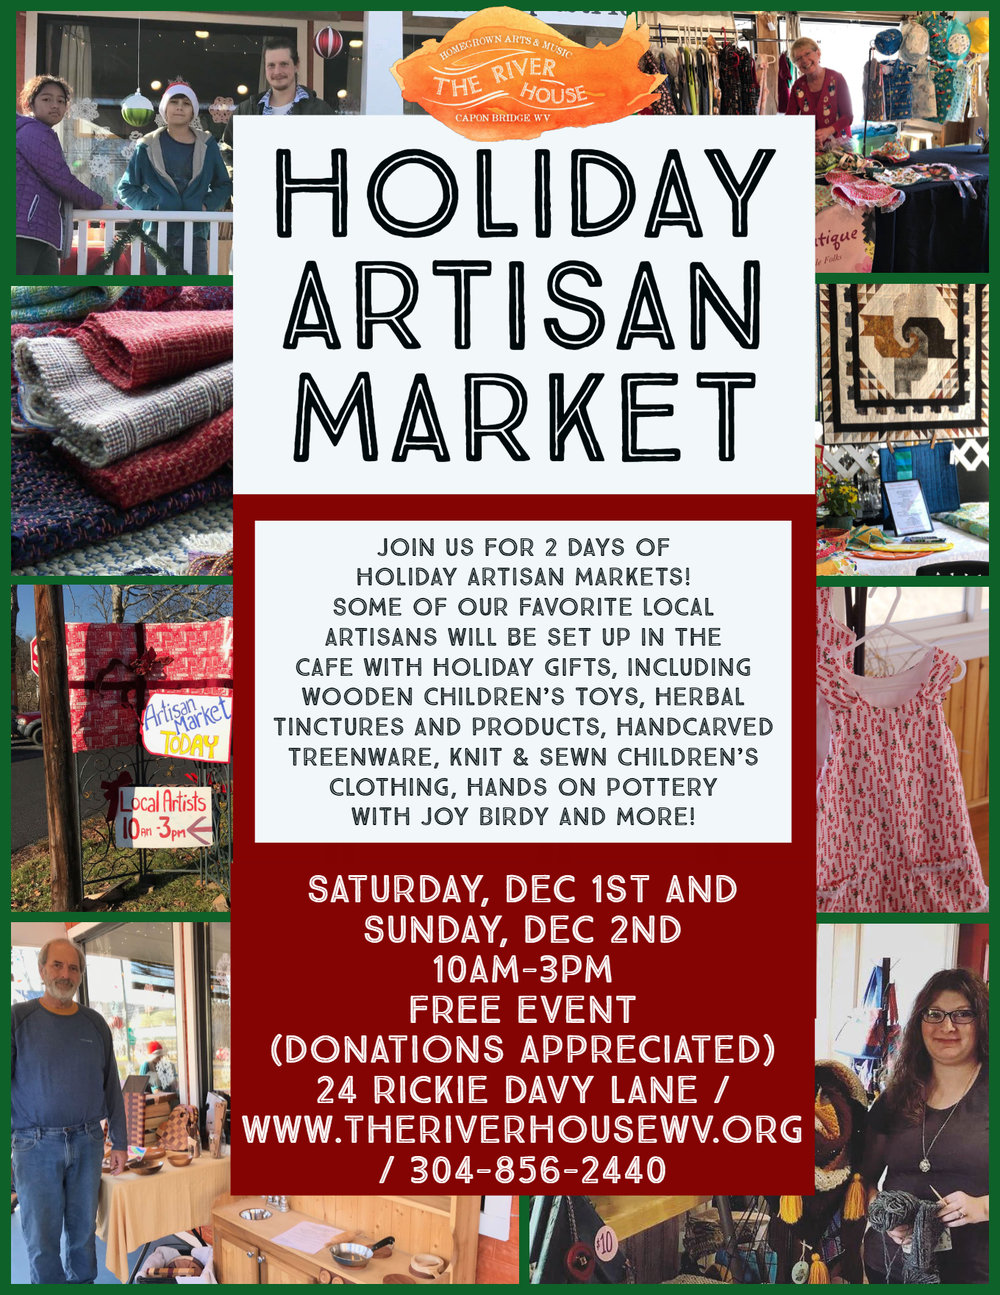 Holiday Artisan Market Flyer 2 days.jpg